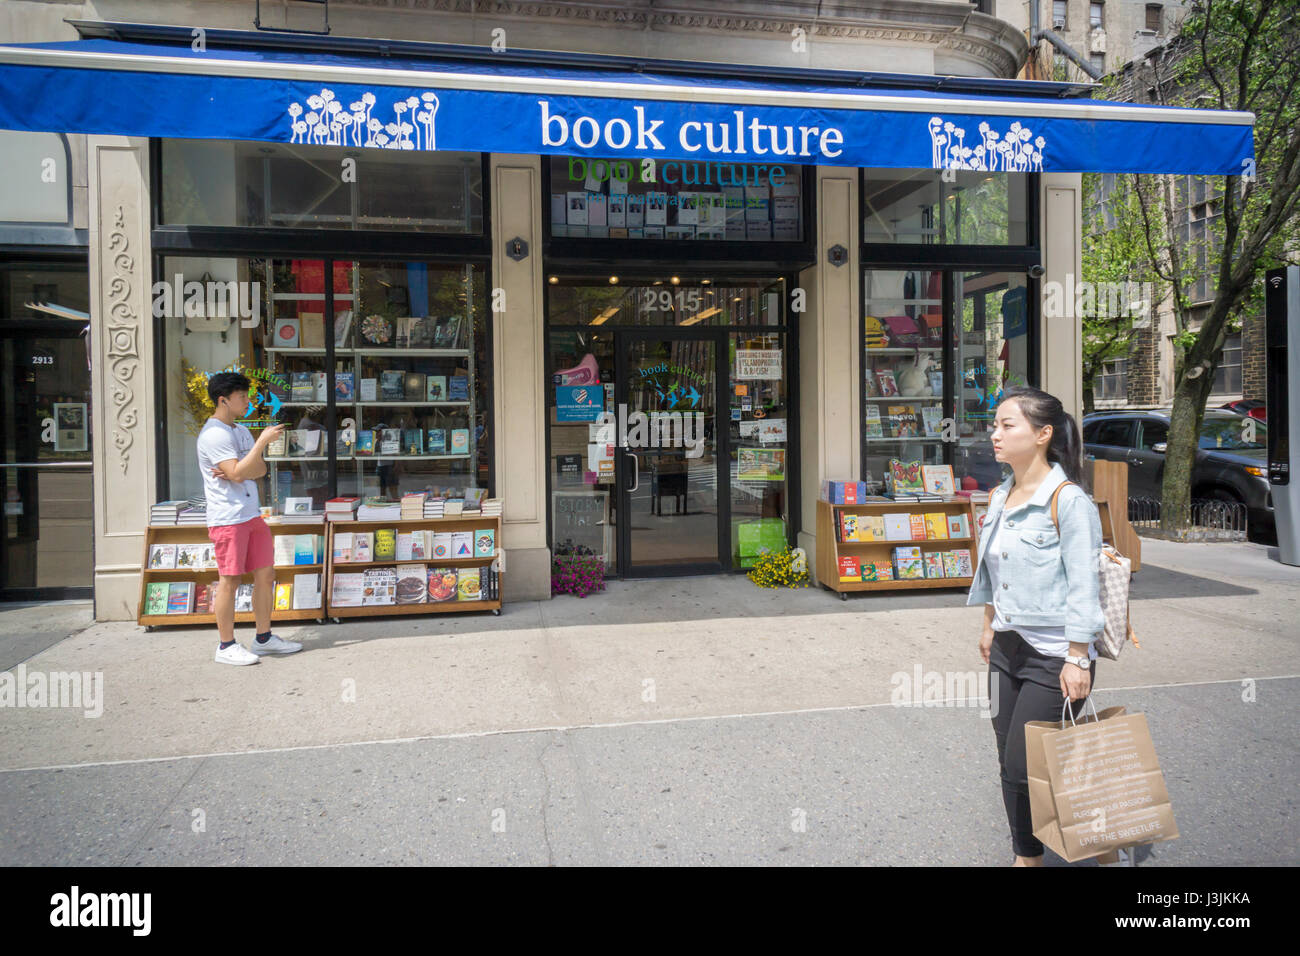 Book Culture, an independent bookstore, is seen in the Upper West Side neighborhood of New York on Saturday, April - Stock Image